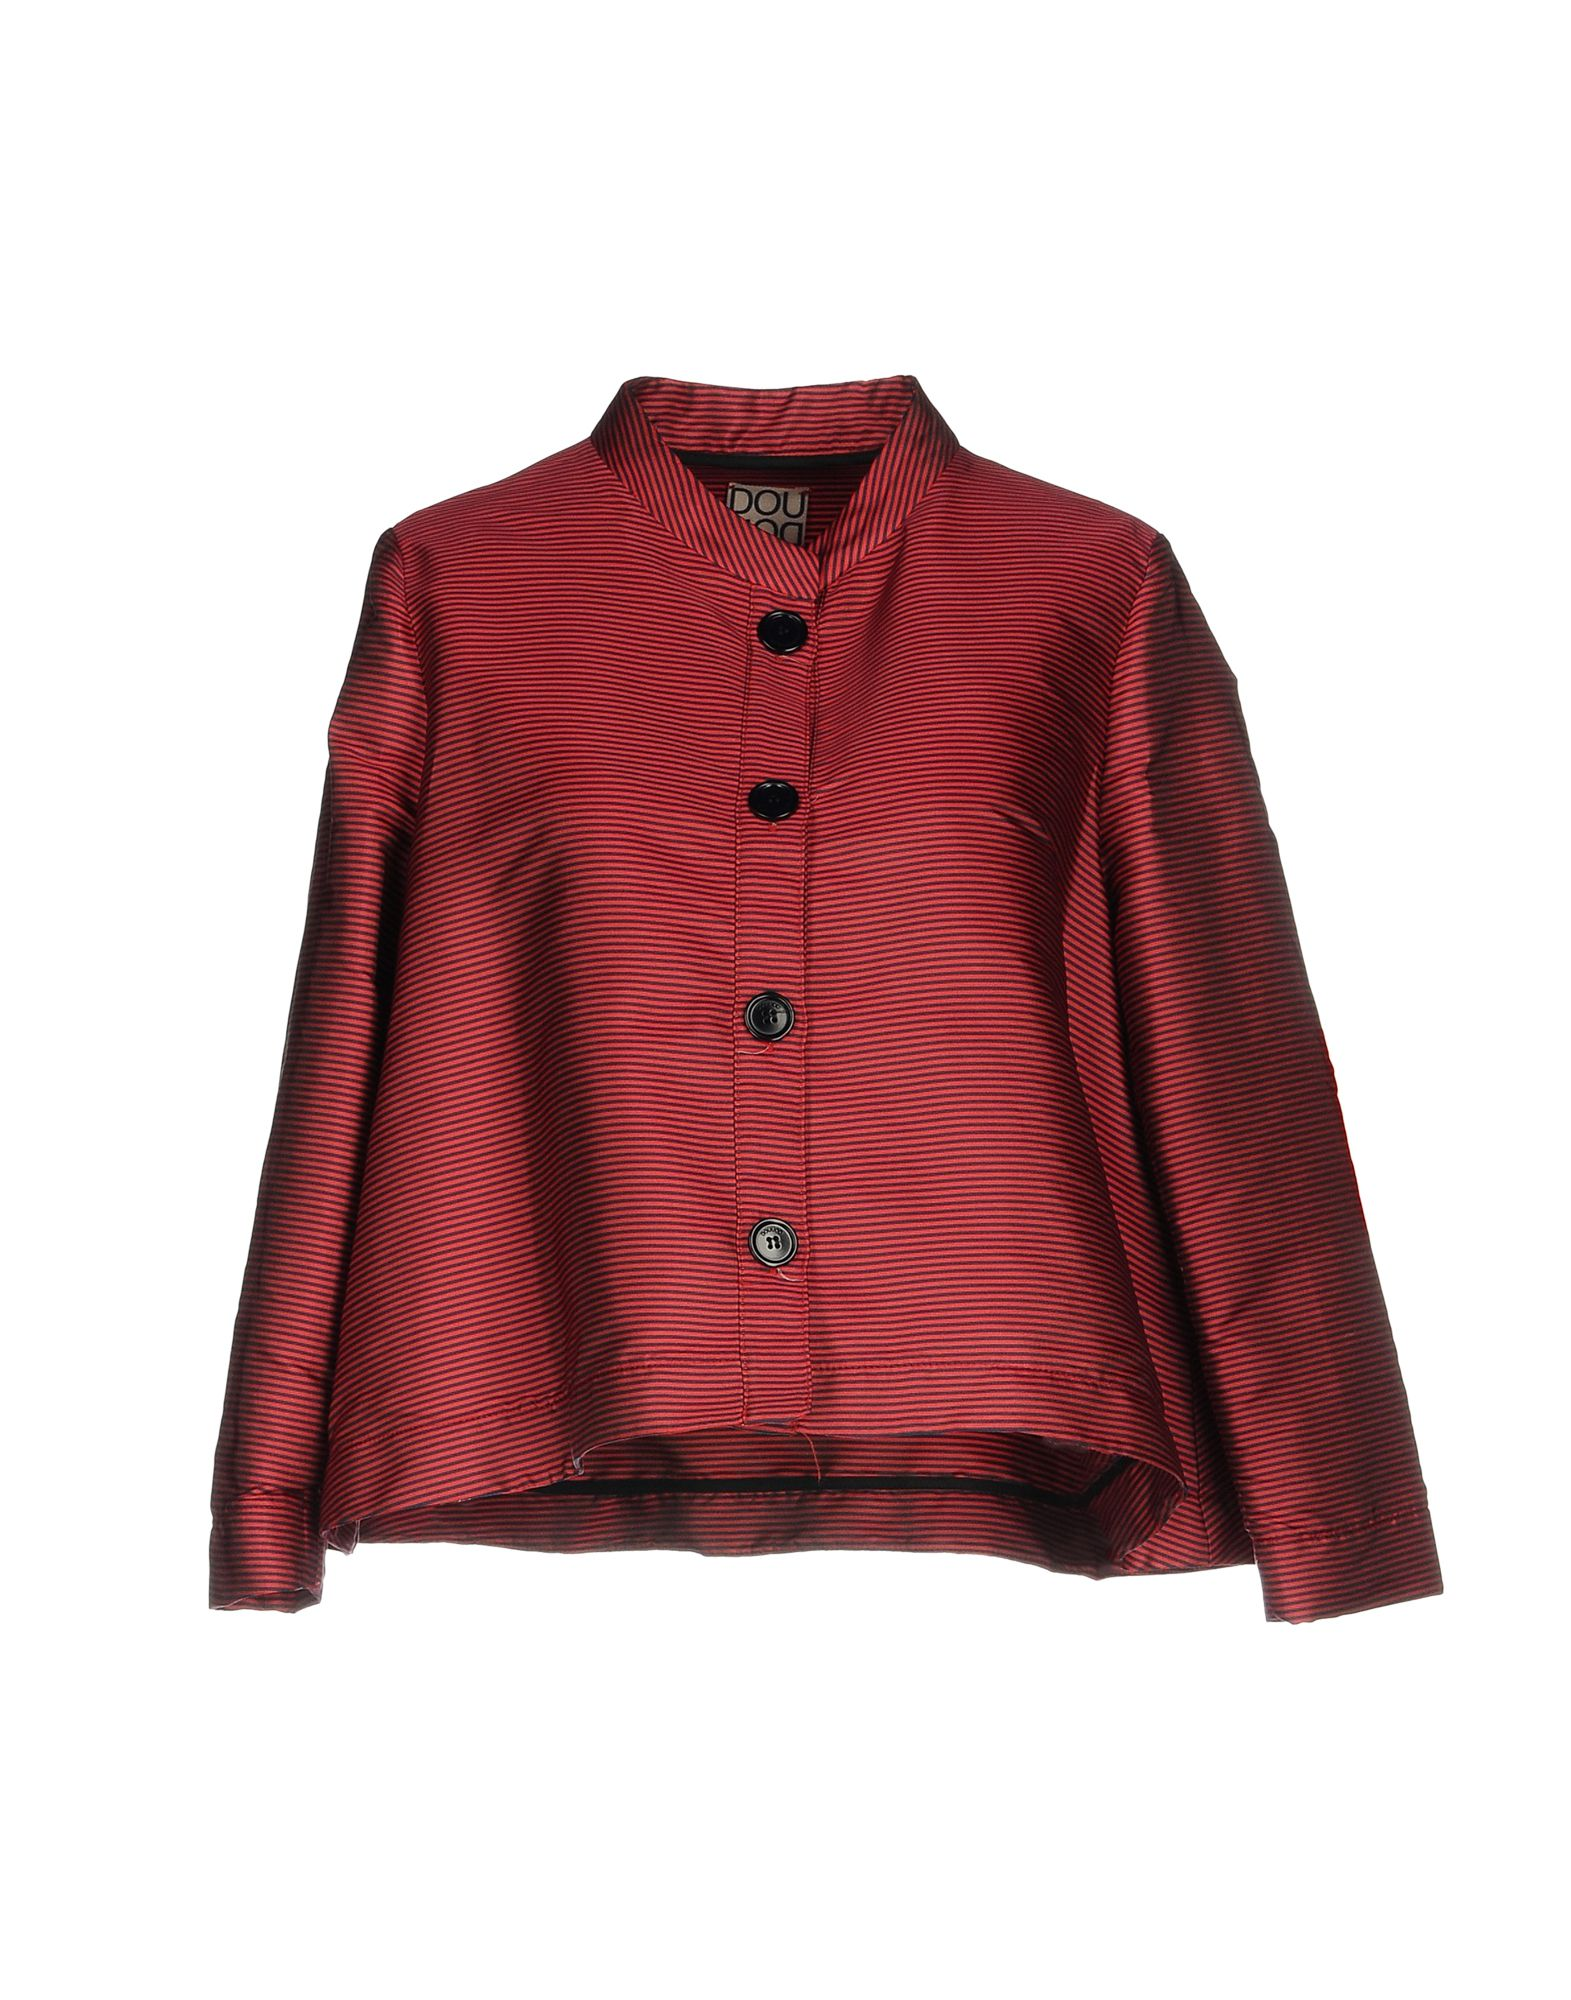 DOUUOD Jacket in Red